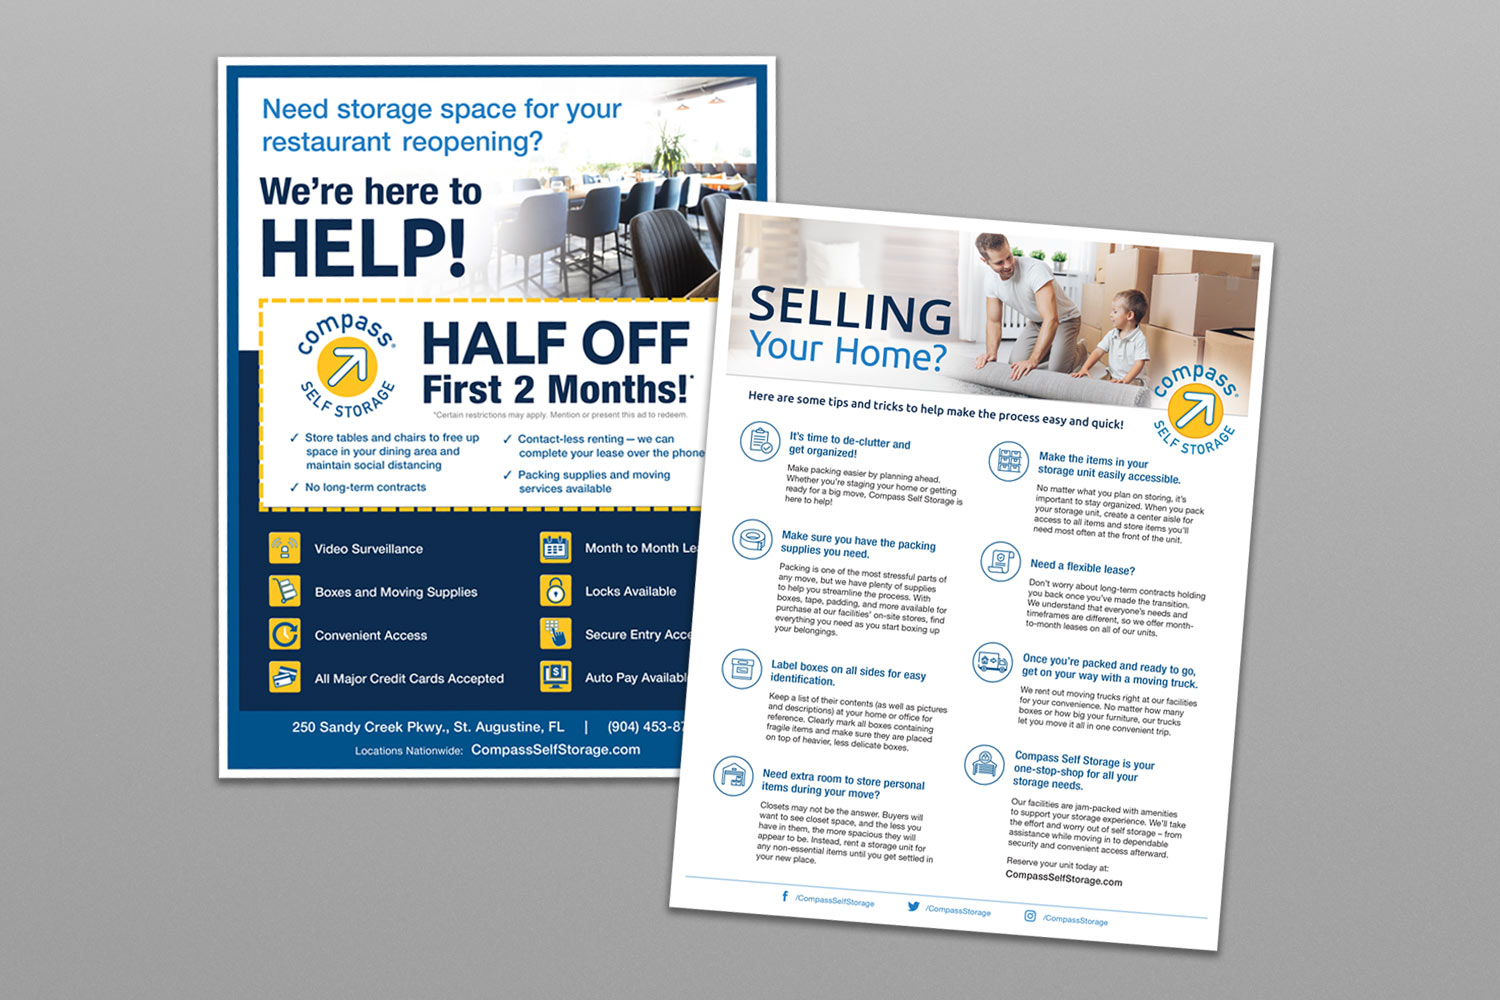 Compass Self Storage marketing materials